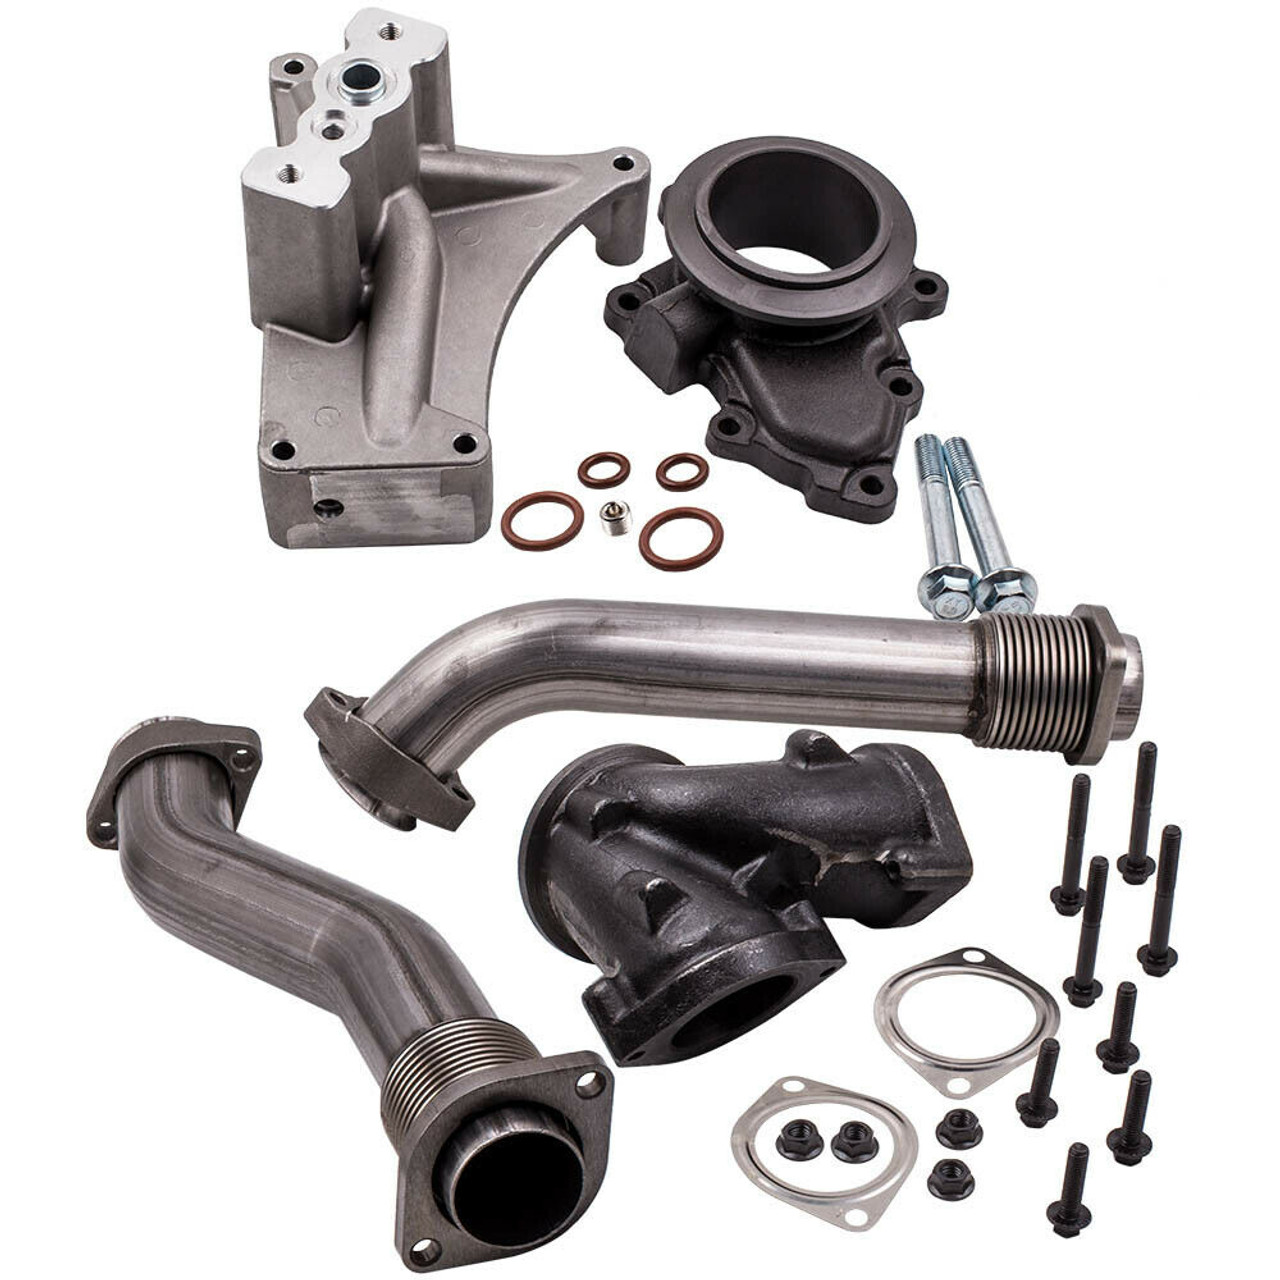 Up Pipes Housing Turbo Pedestal Kit Fit 99.5-03 Ford 7.3L Powerstroke Diesel